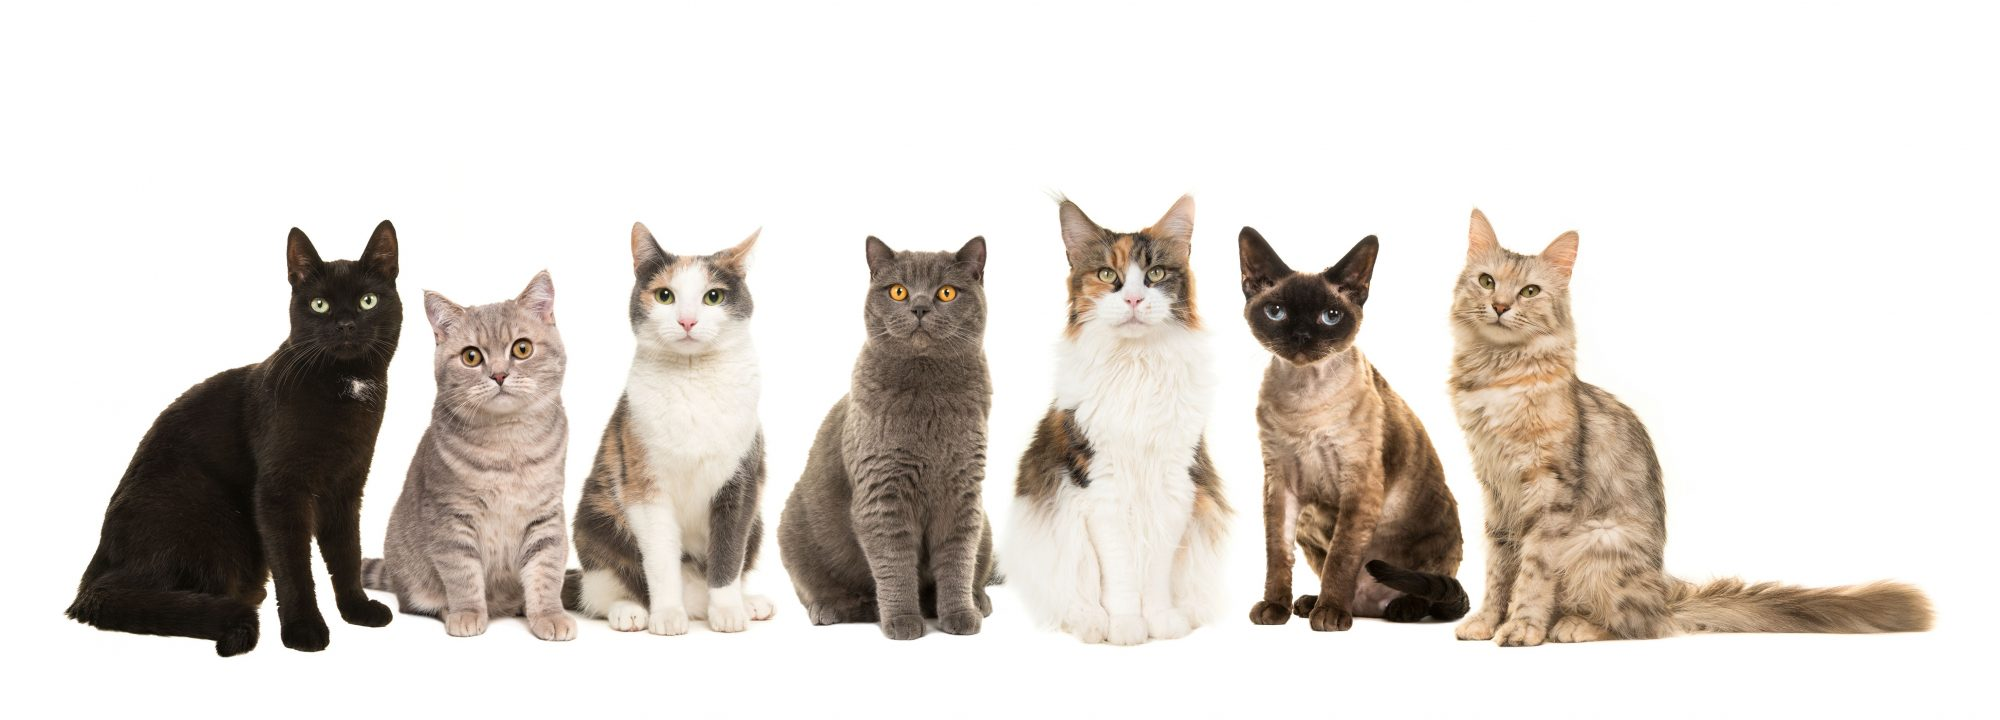 Various cat breeds sitting next to each other.